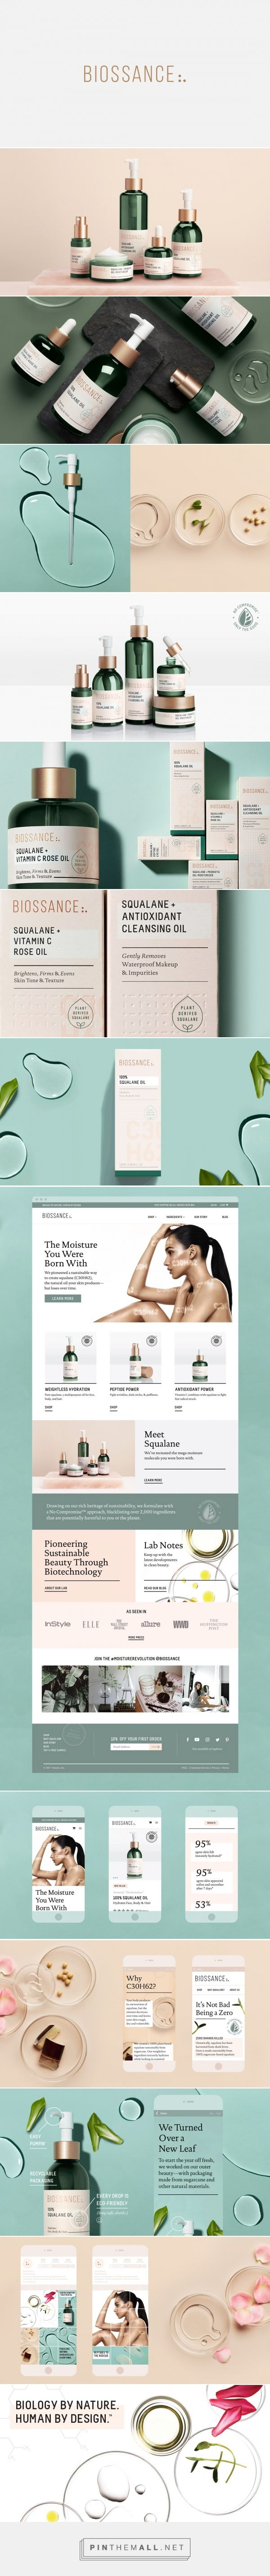 Biossance Skincare Branding, Packaging, and Web Design by Bartlett Brands | Fivestar Branding Agency – Design and Branding Agency & Curated Inspiration Gallery (Beauty Design Cosmetic)